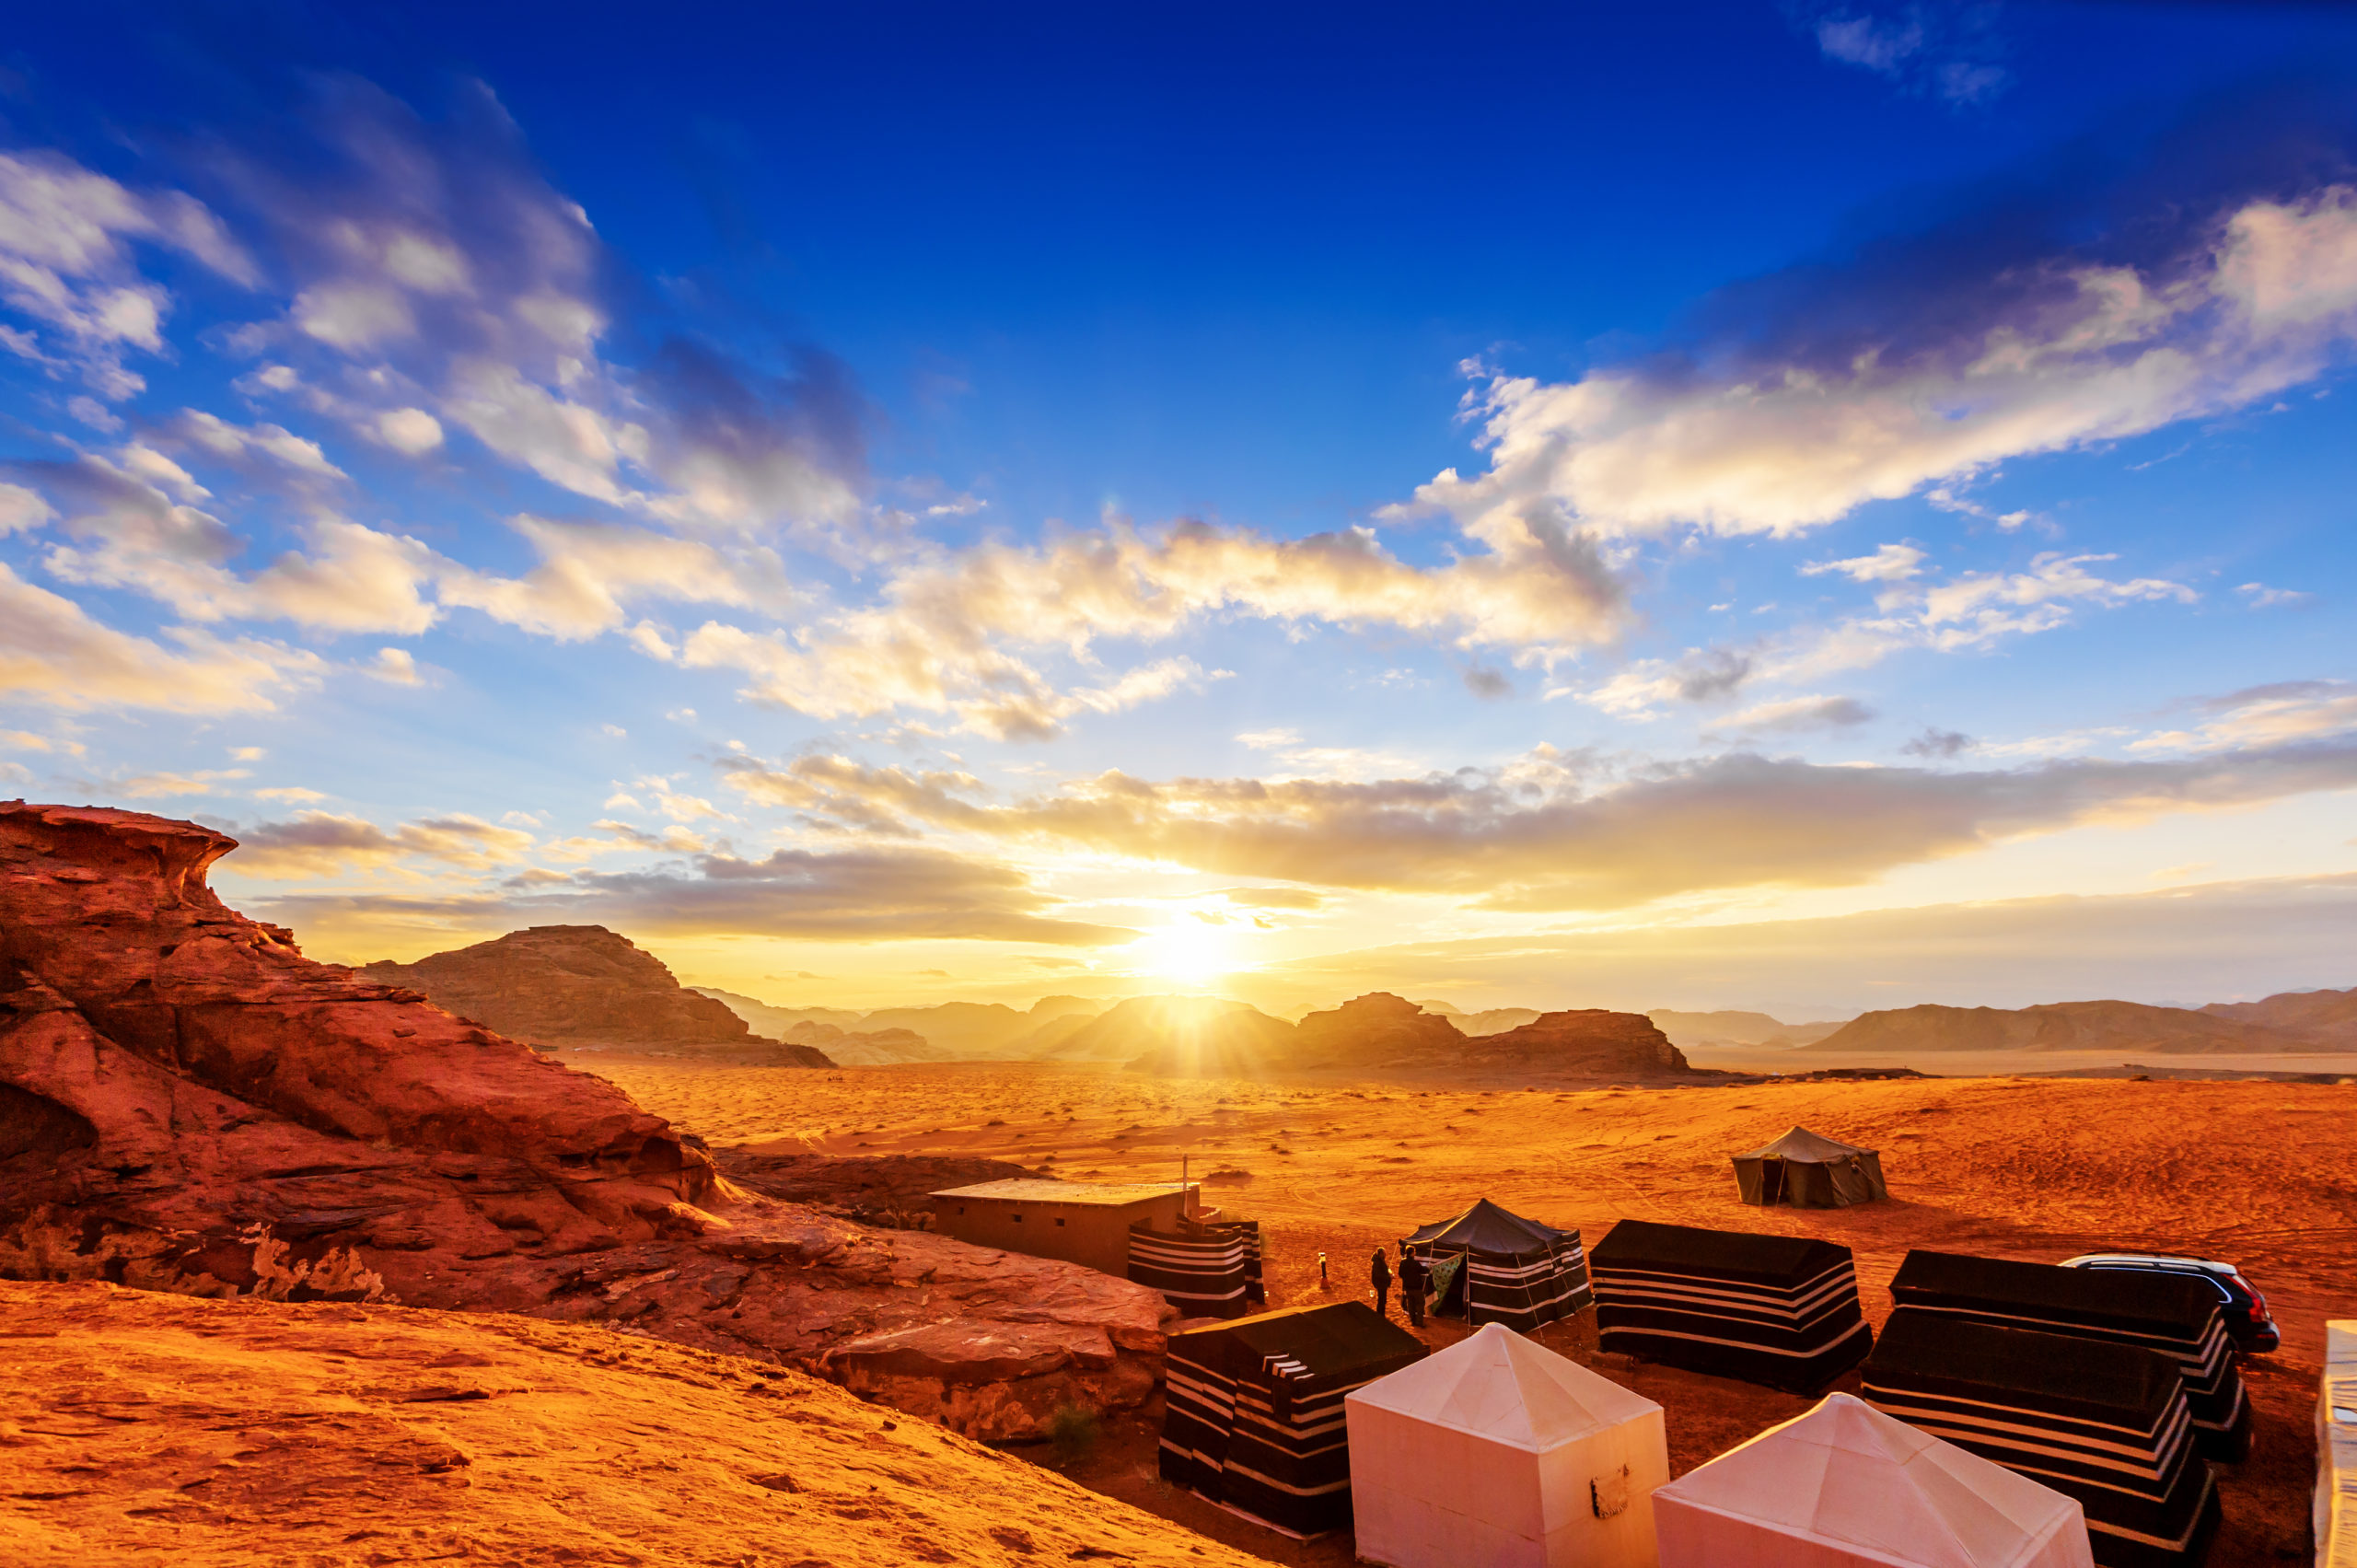 When it comes to the deserts of Jordan, Wadi Rum might be the most famous, but it's not the only beautiful desert you'll find in the kingdom.